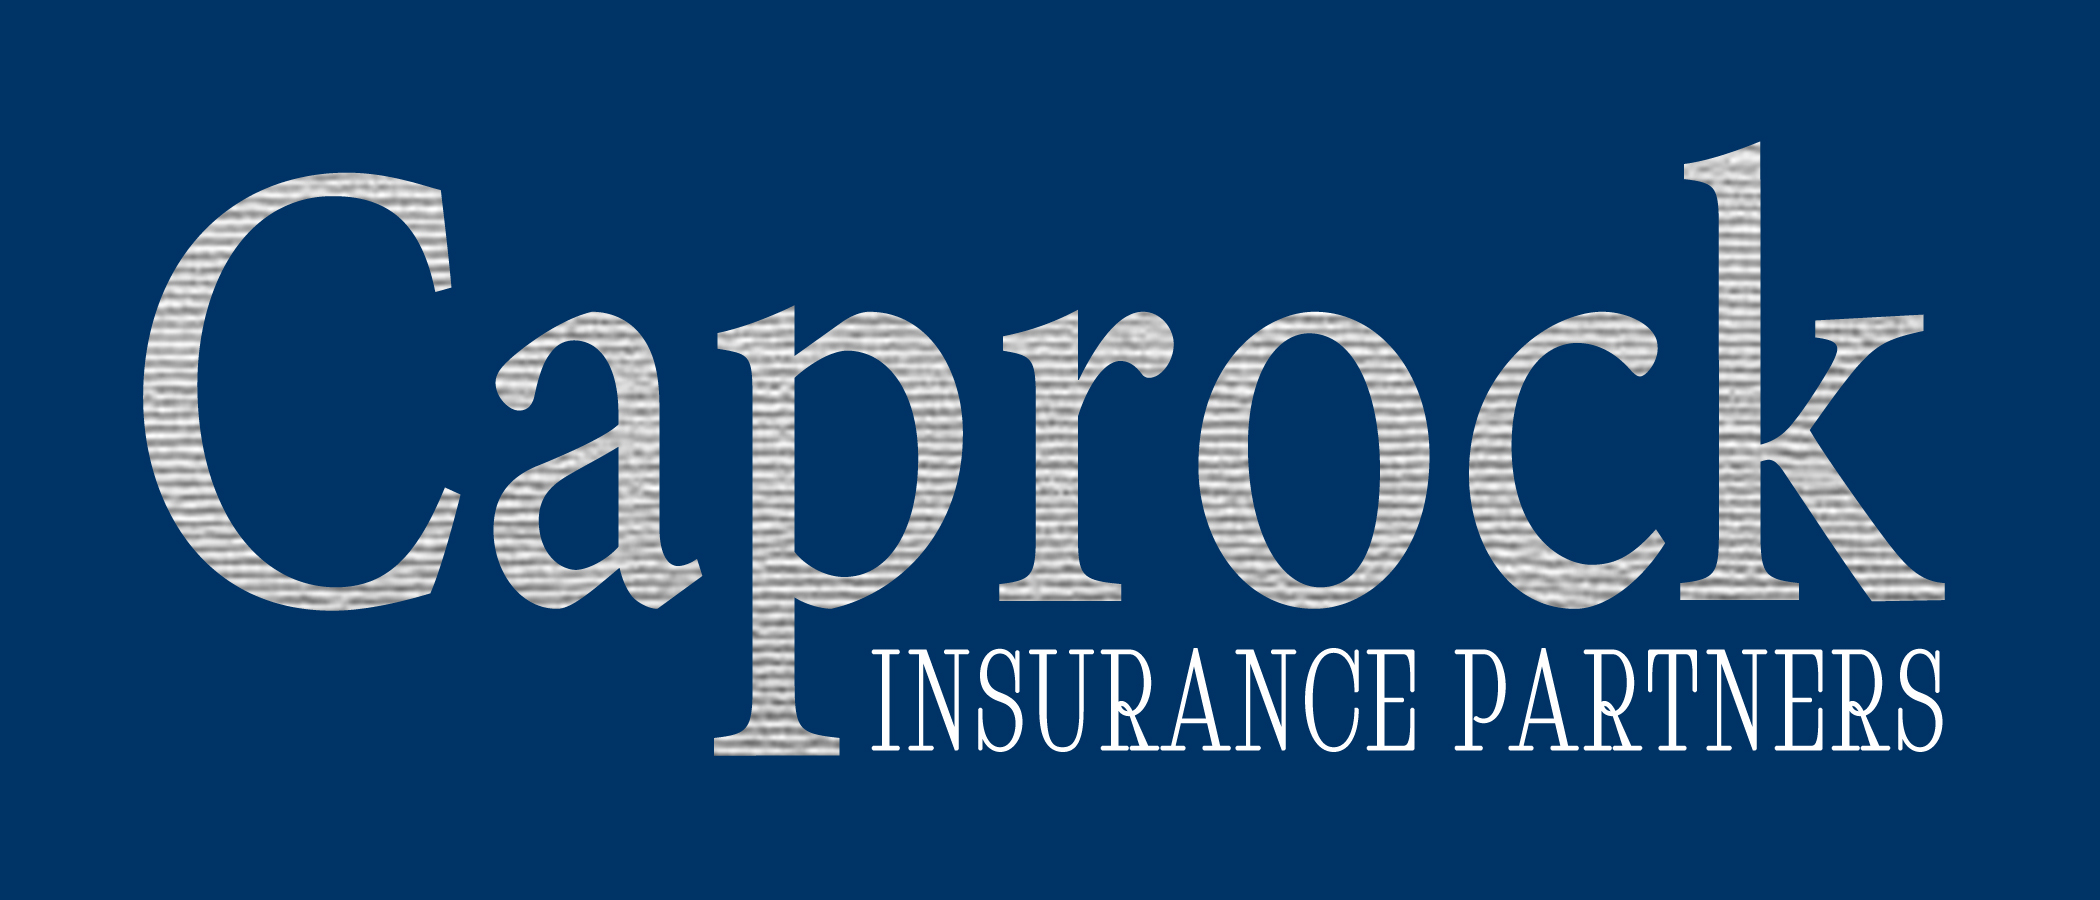 Caprock Insurance Parnters